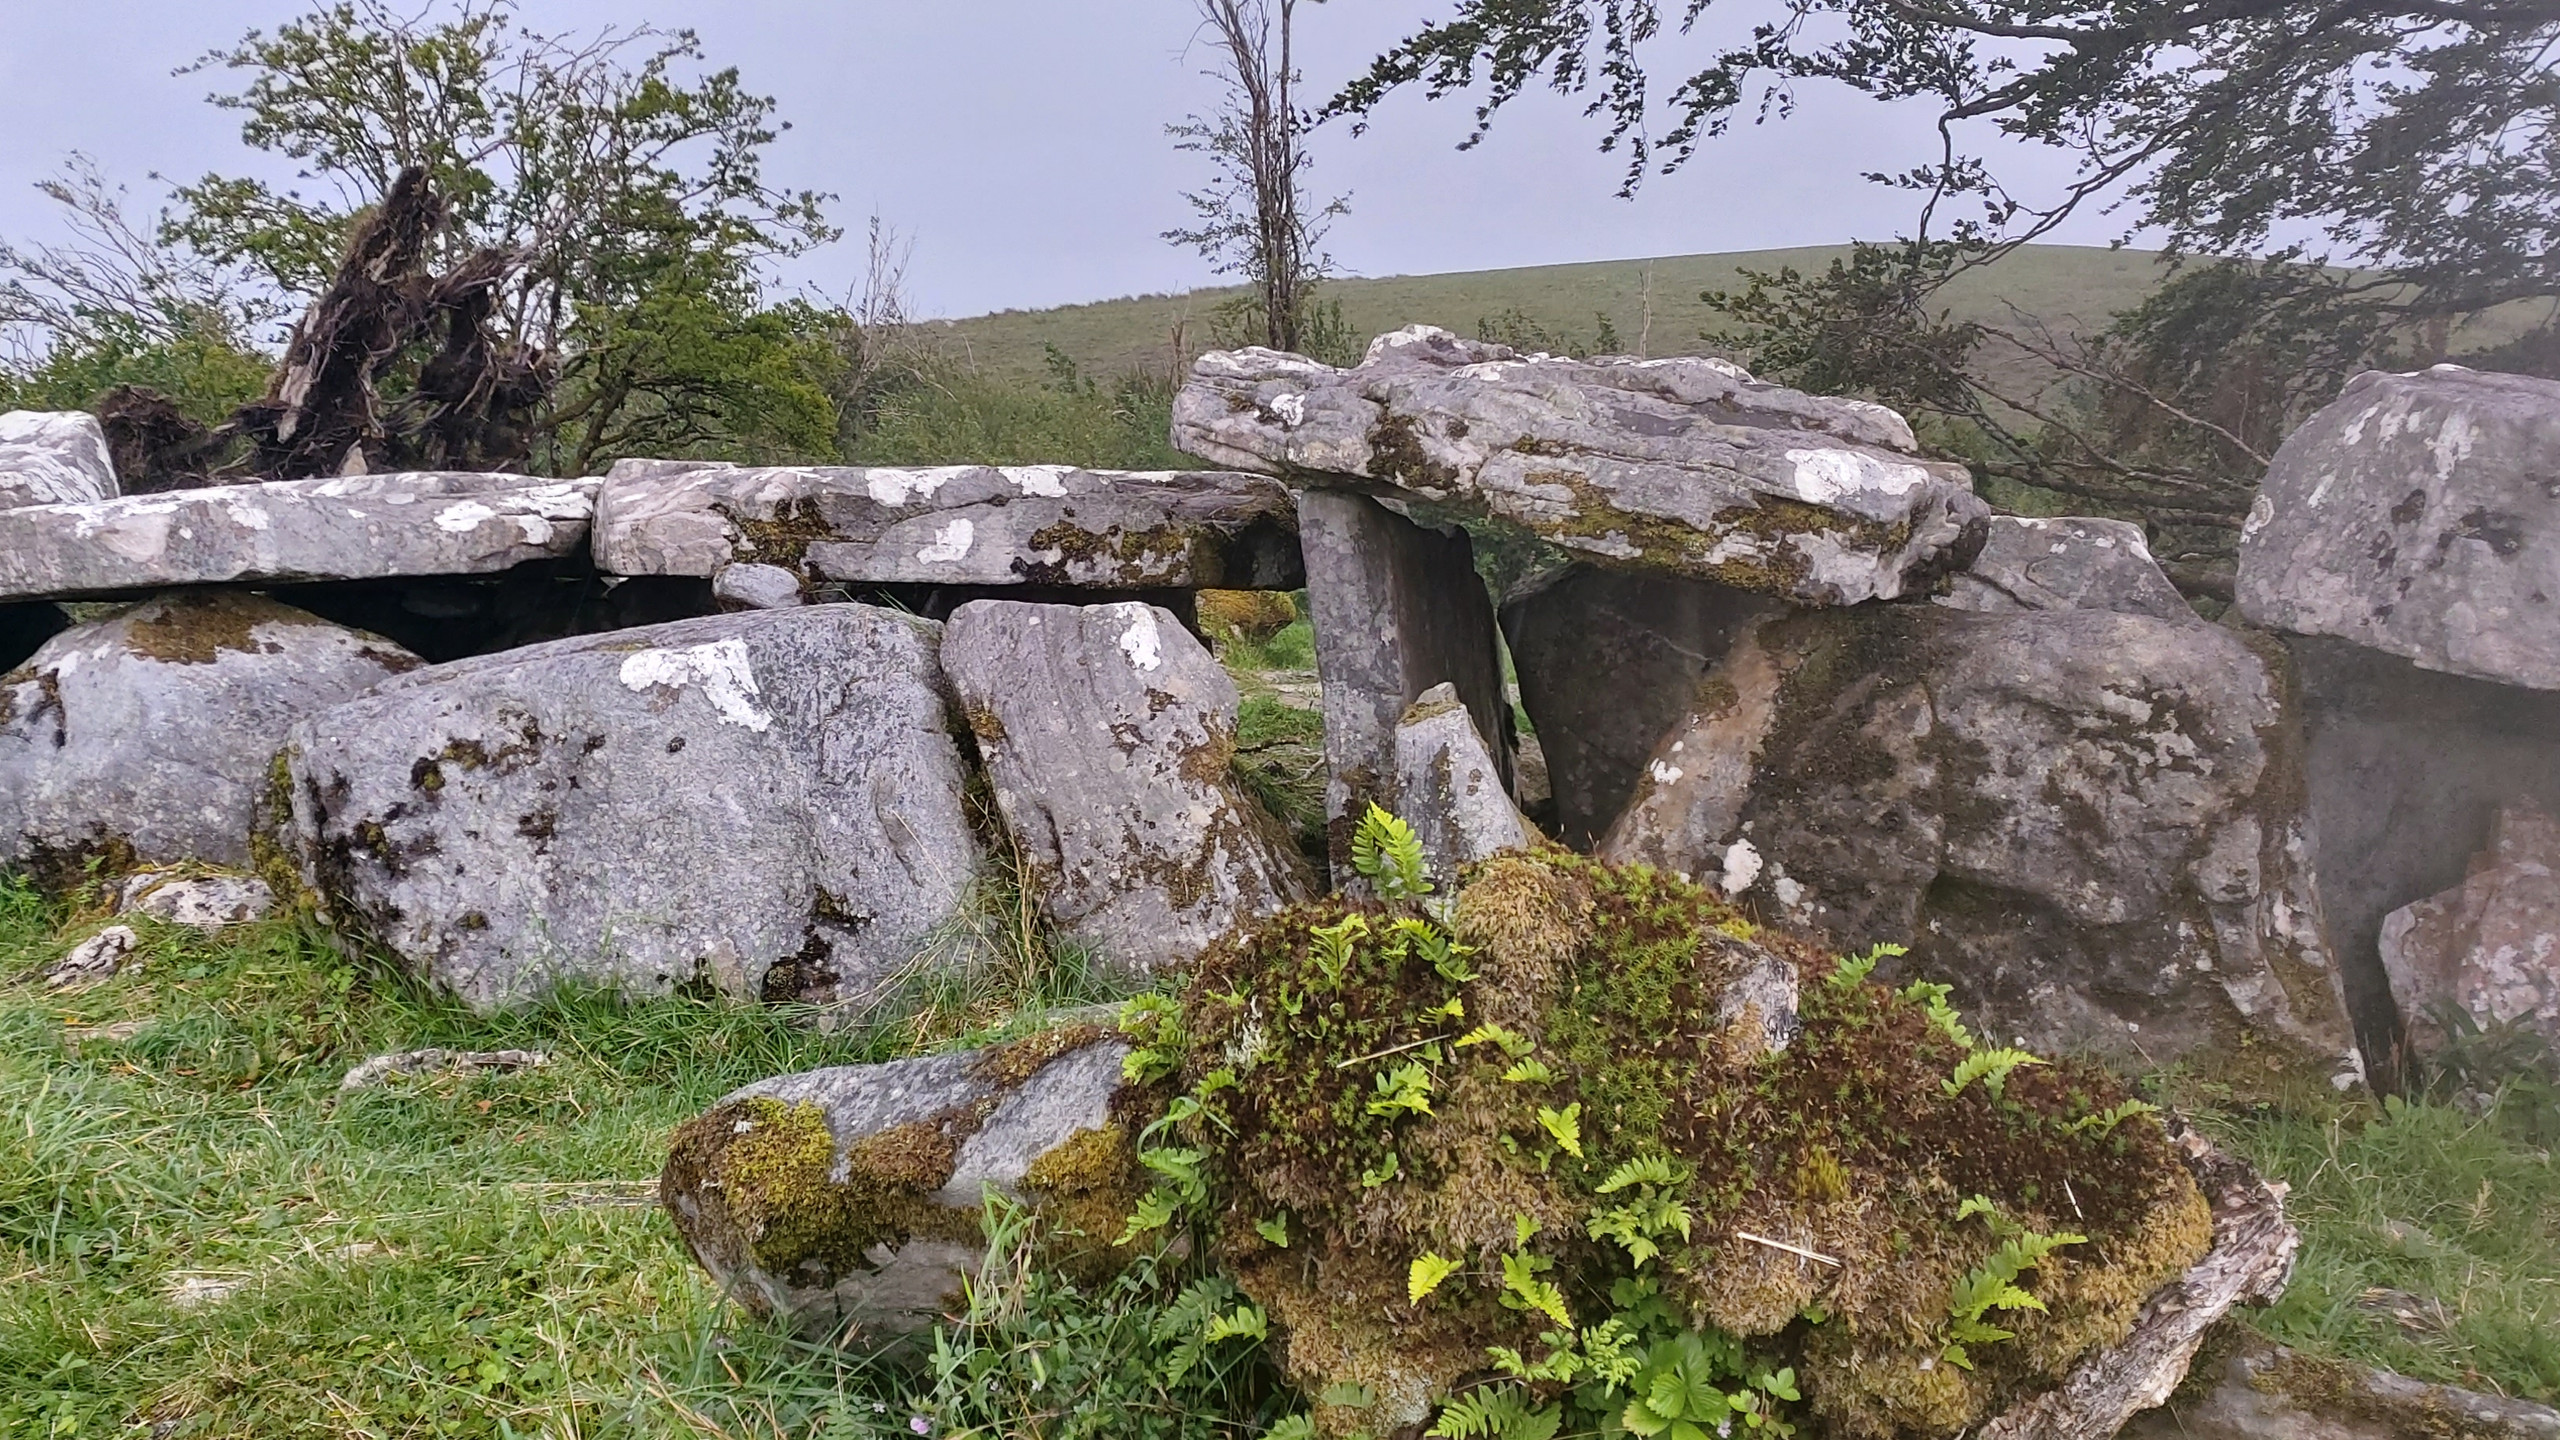 The Giant's Grave